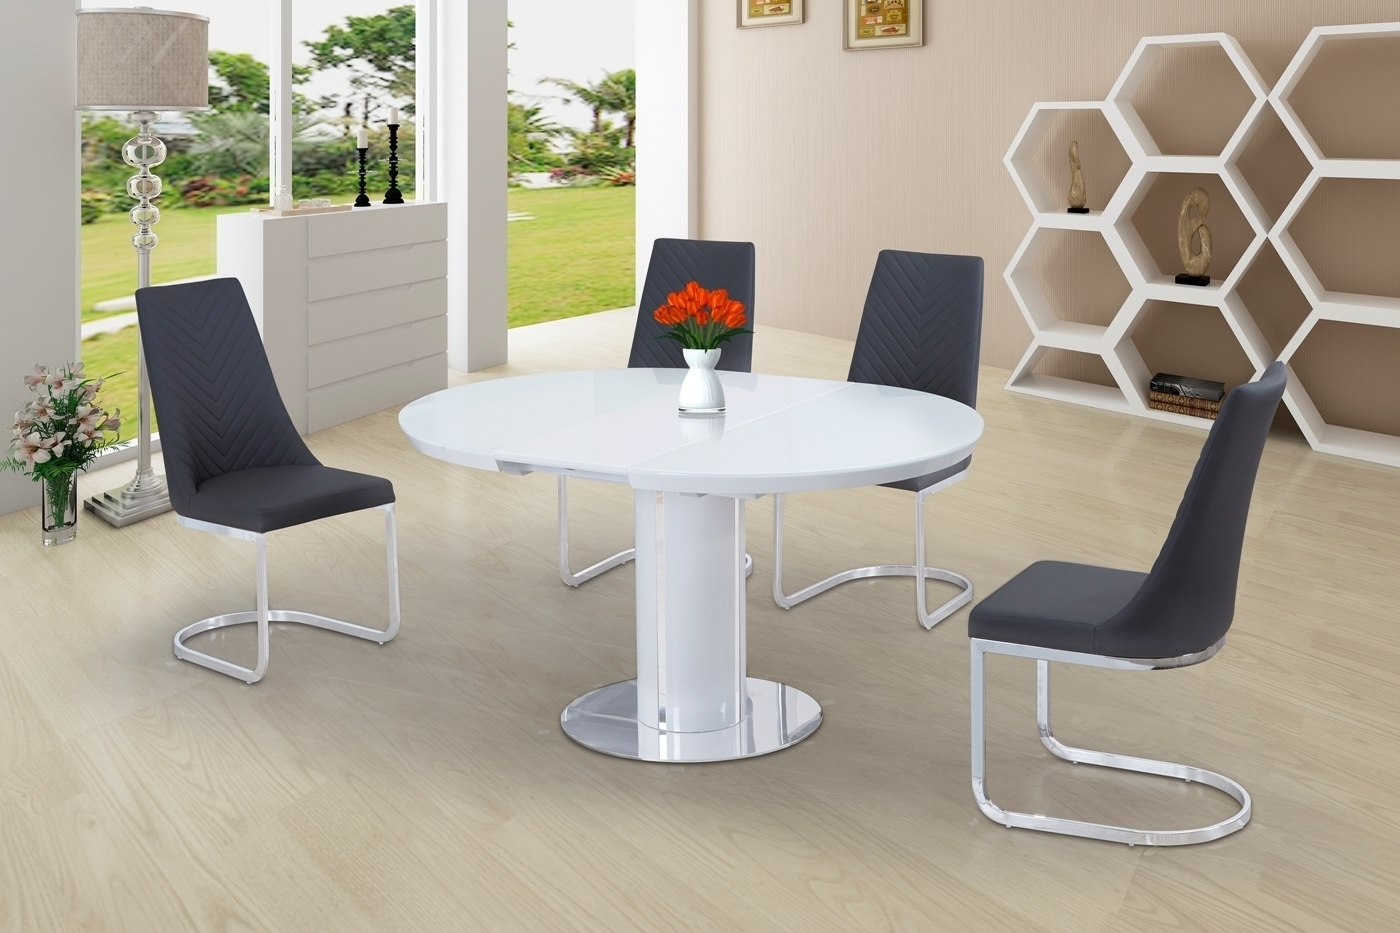 Round White Glass High Gloss Dining Table And 6 Grey Chairs Inside Widely Used Round High Gloss Dining Tables (View 22 of 25)